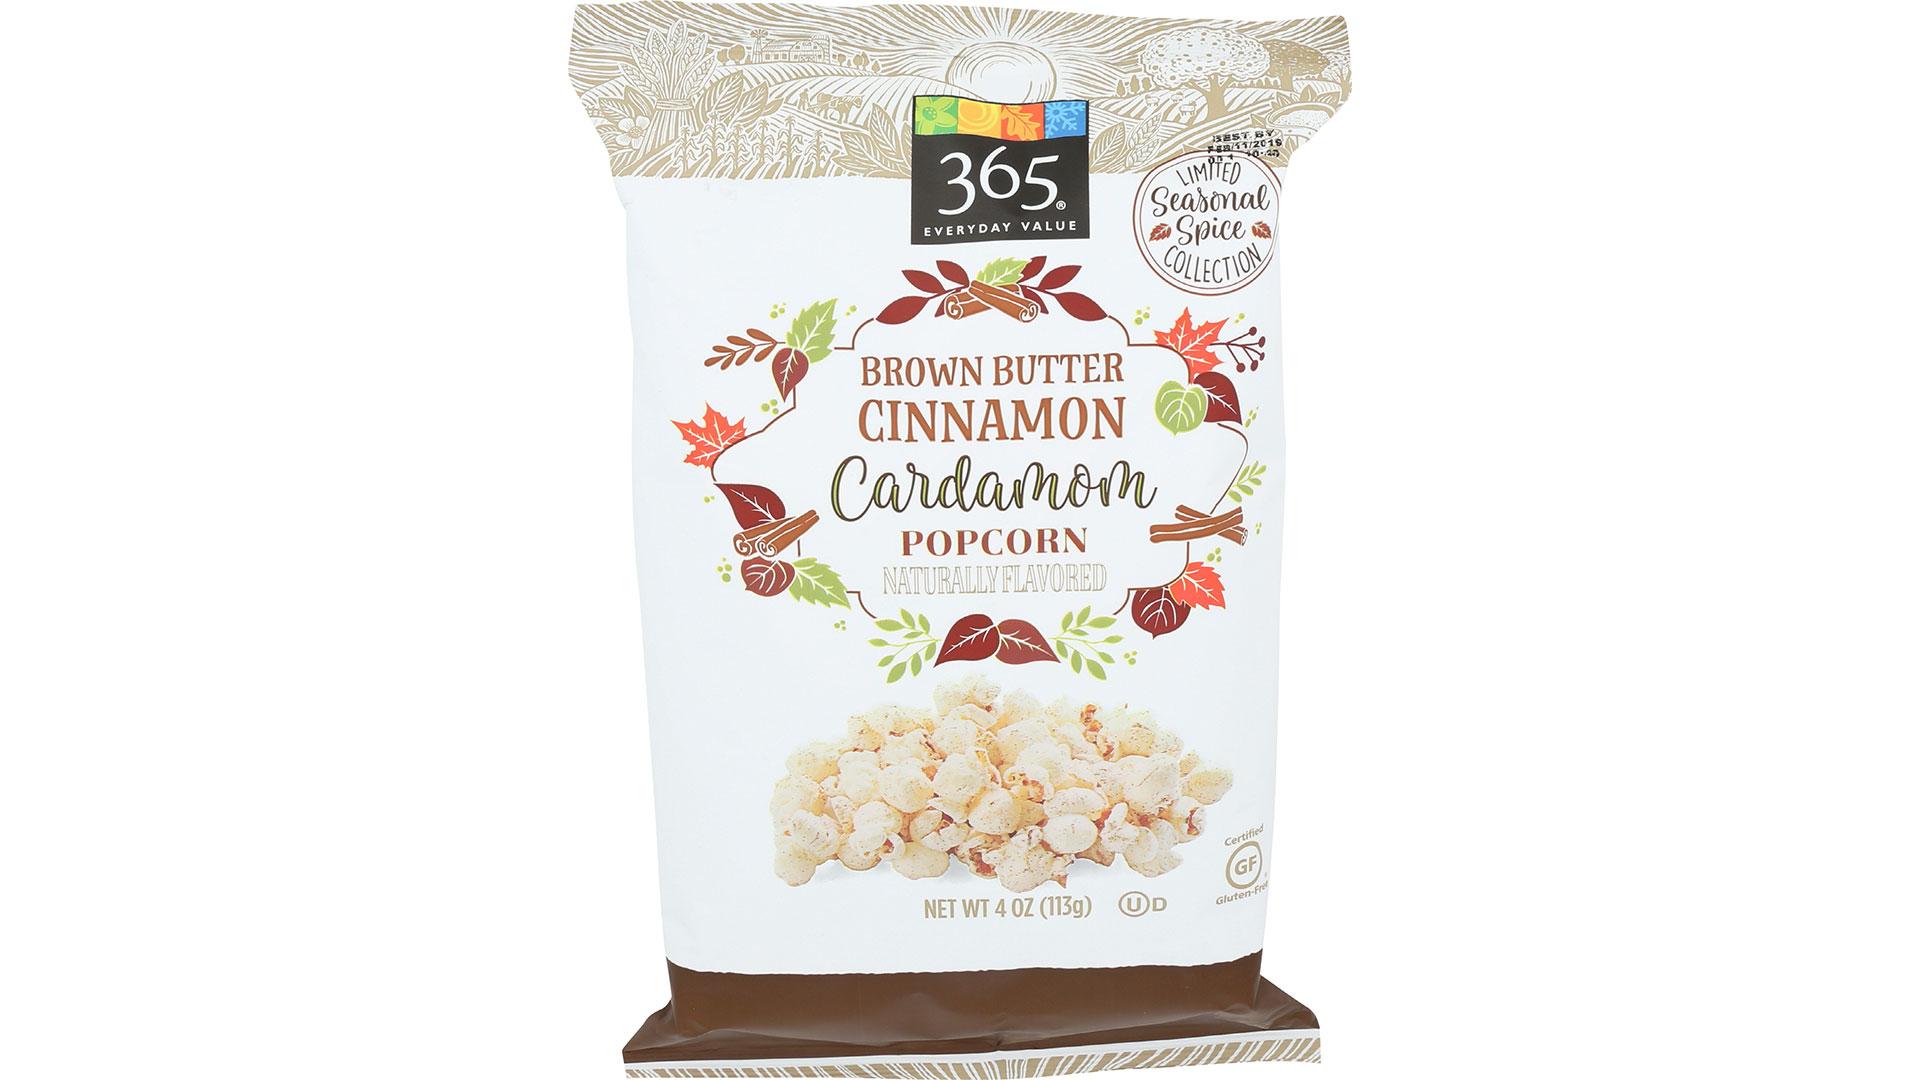 365 Everyday Value Brown Butter Cinnamon Popcorn with Cardamom